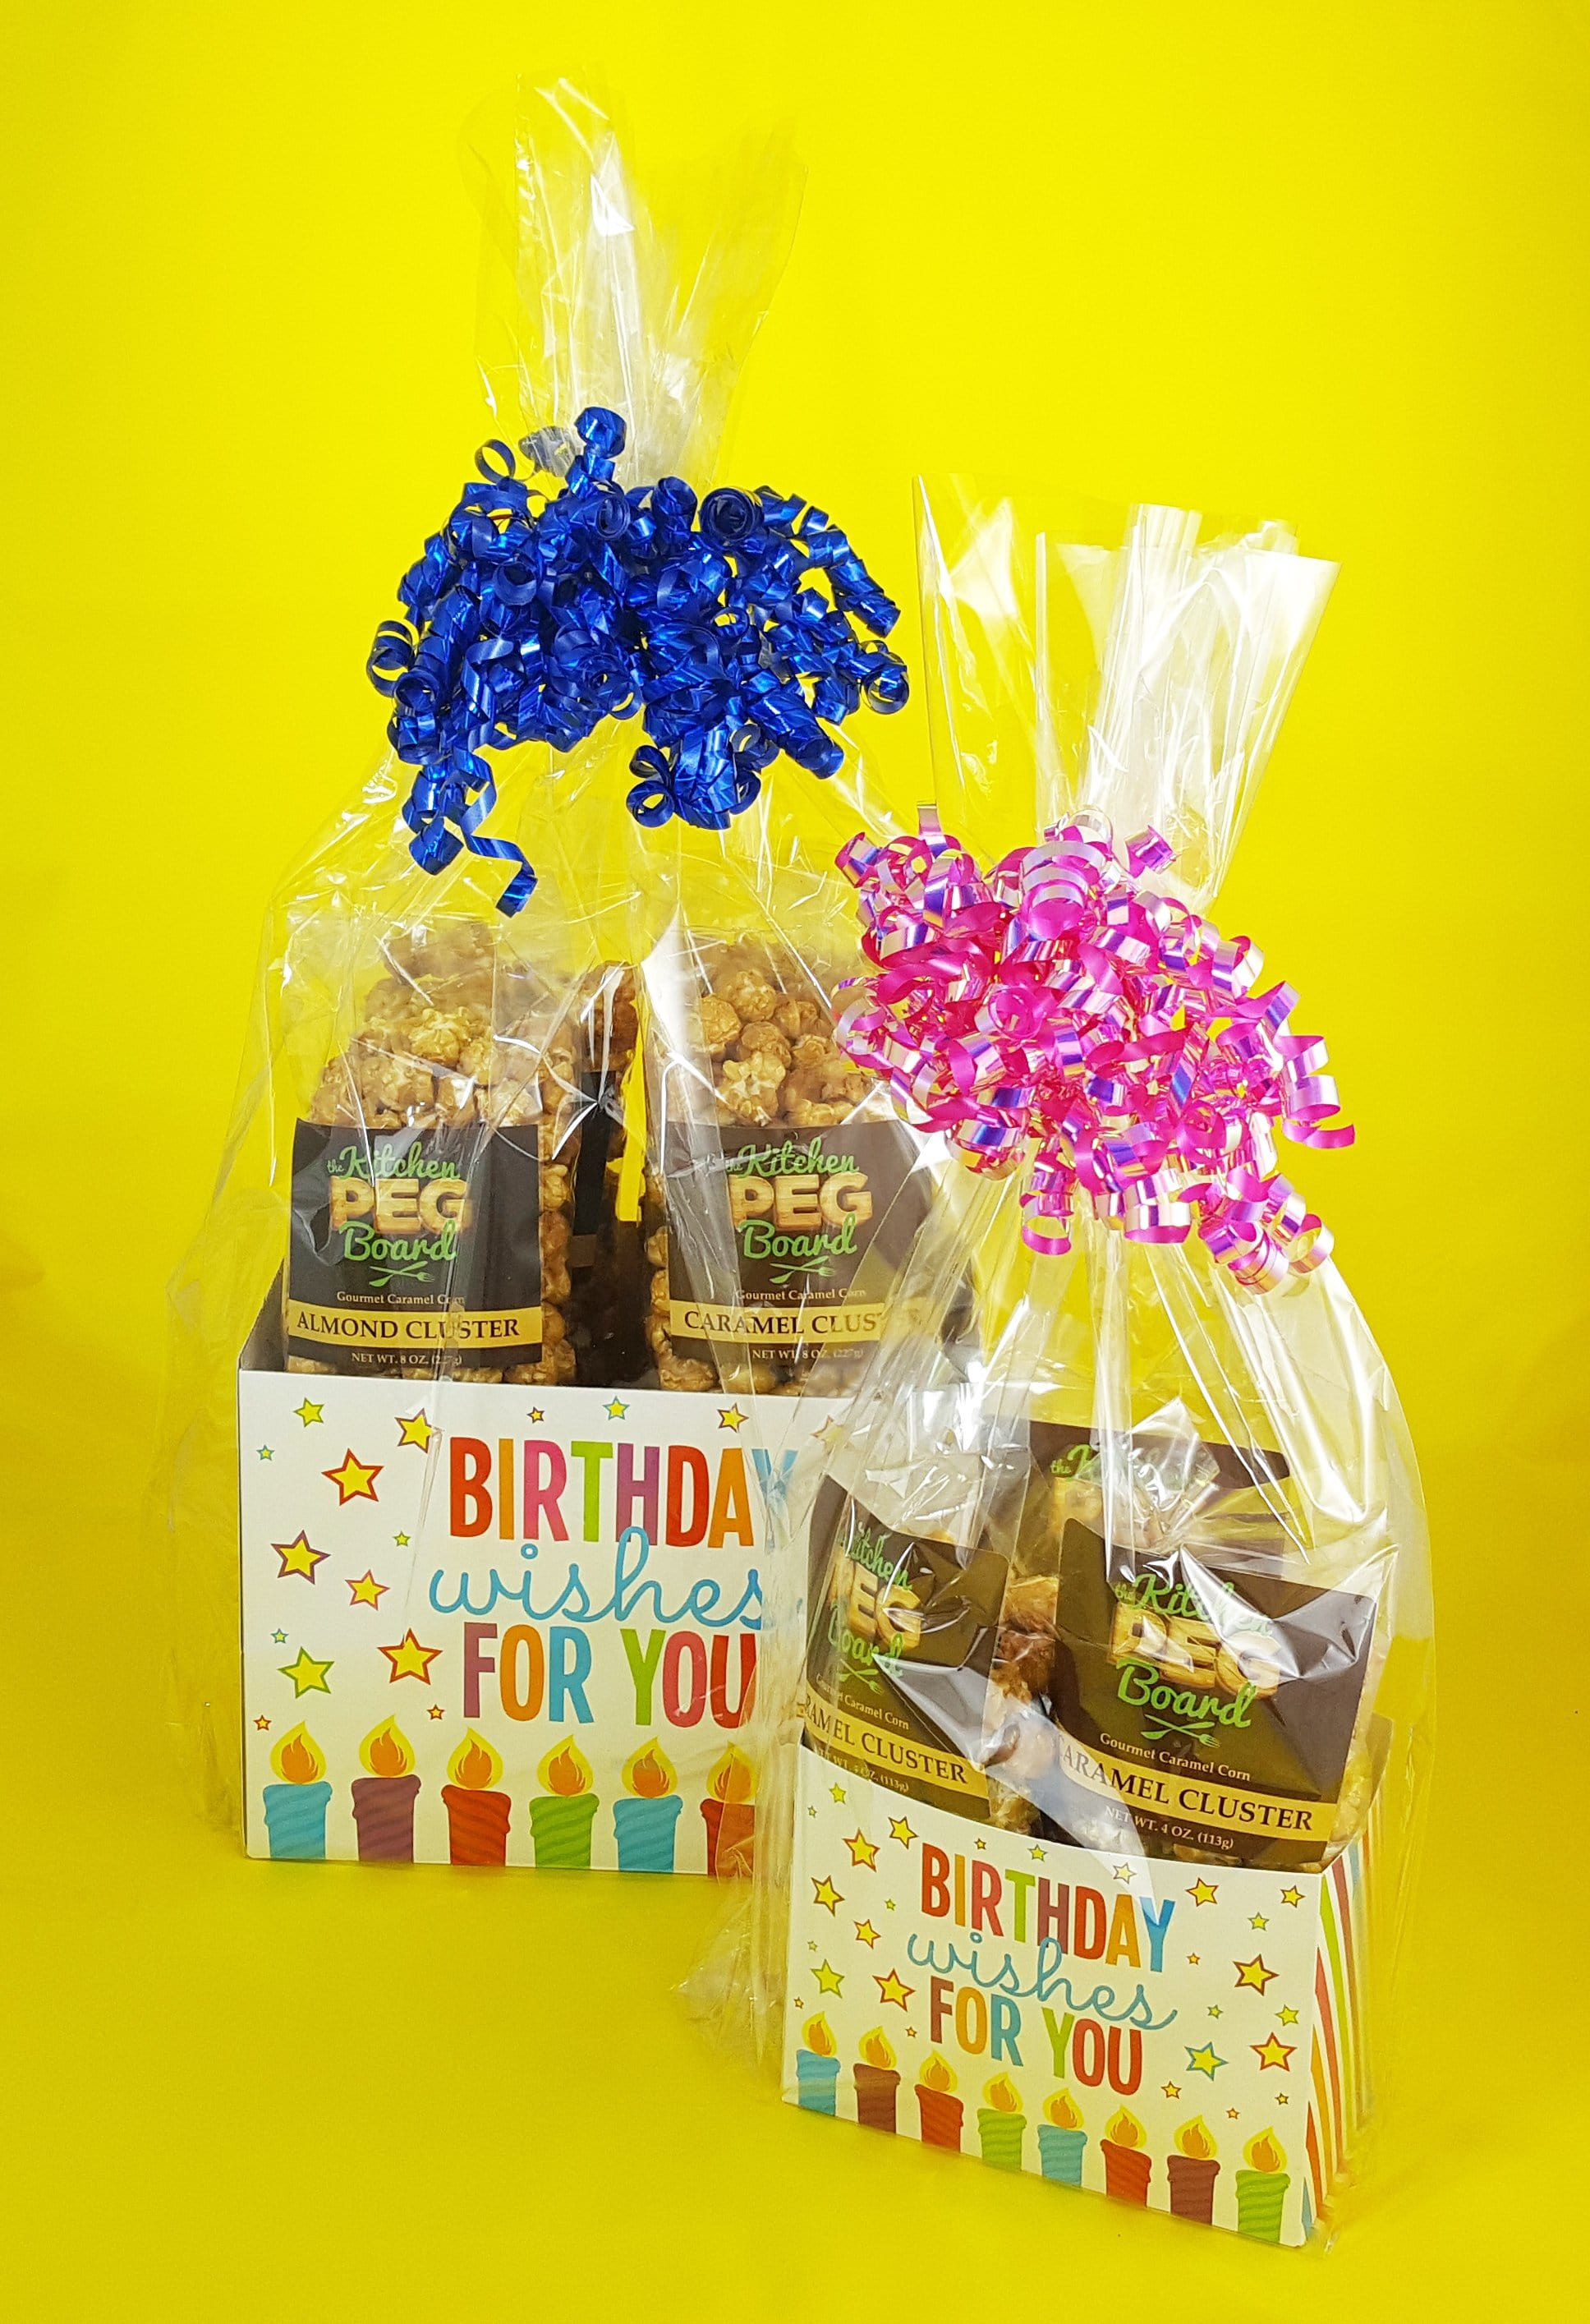 Birthday Wishes Popcorn Gift Basket The Kitchen Peg Board